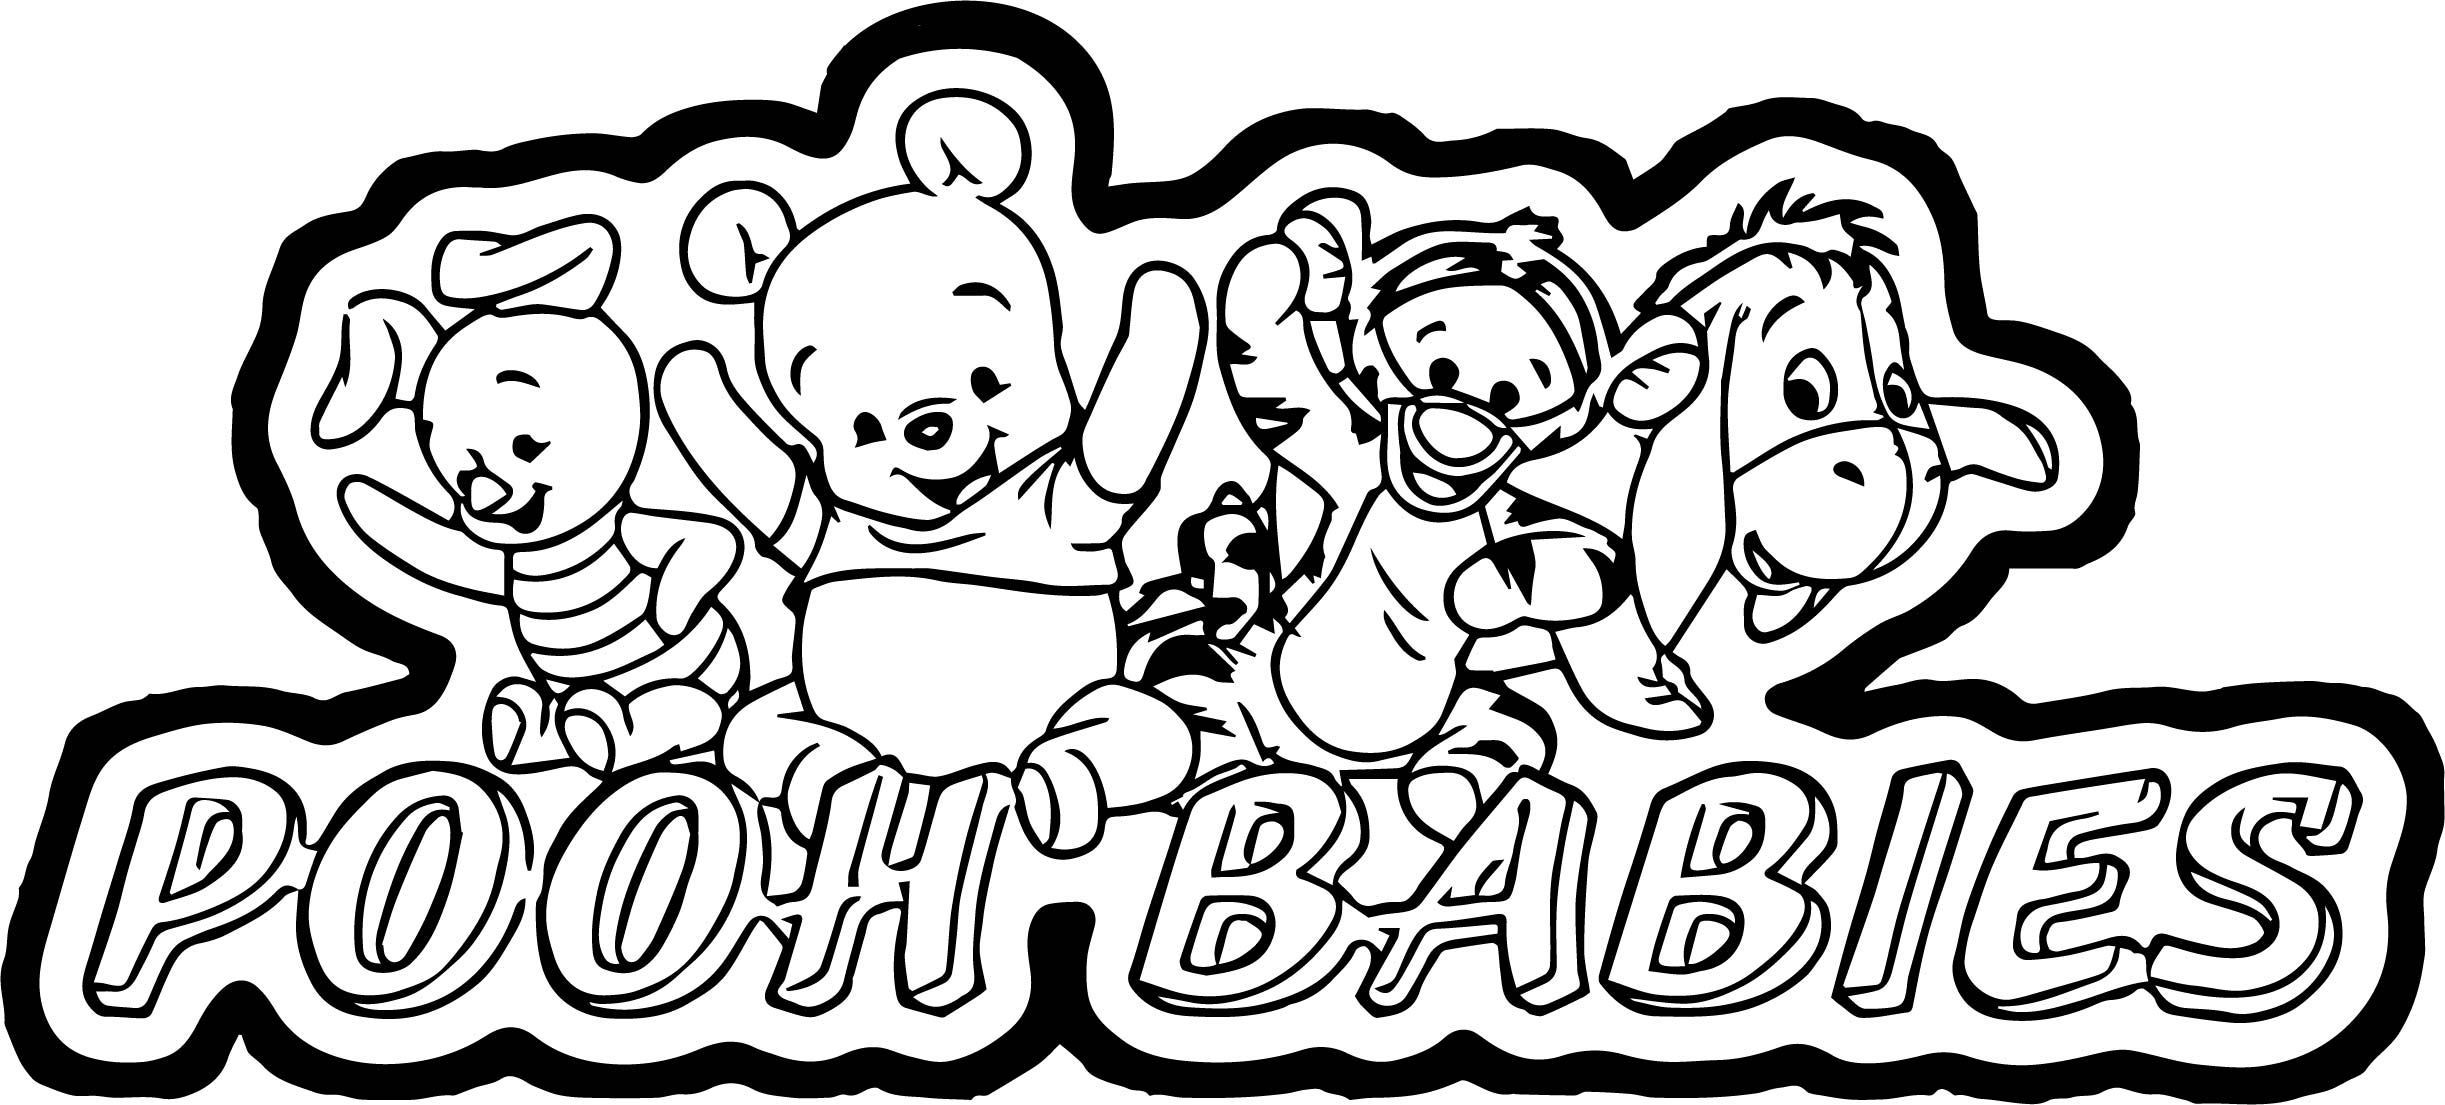 Pooh Babies Title Coloring Page